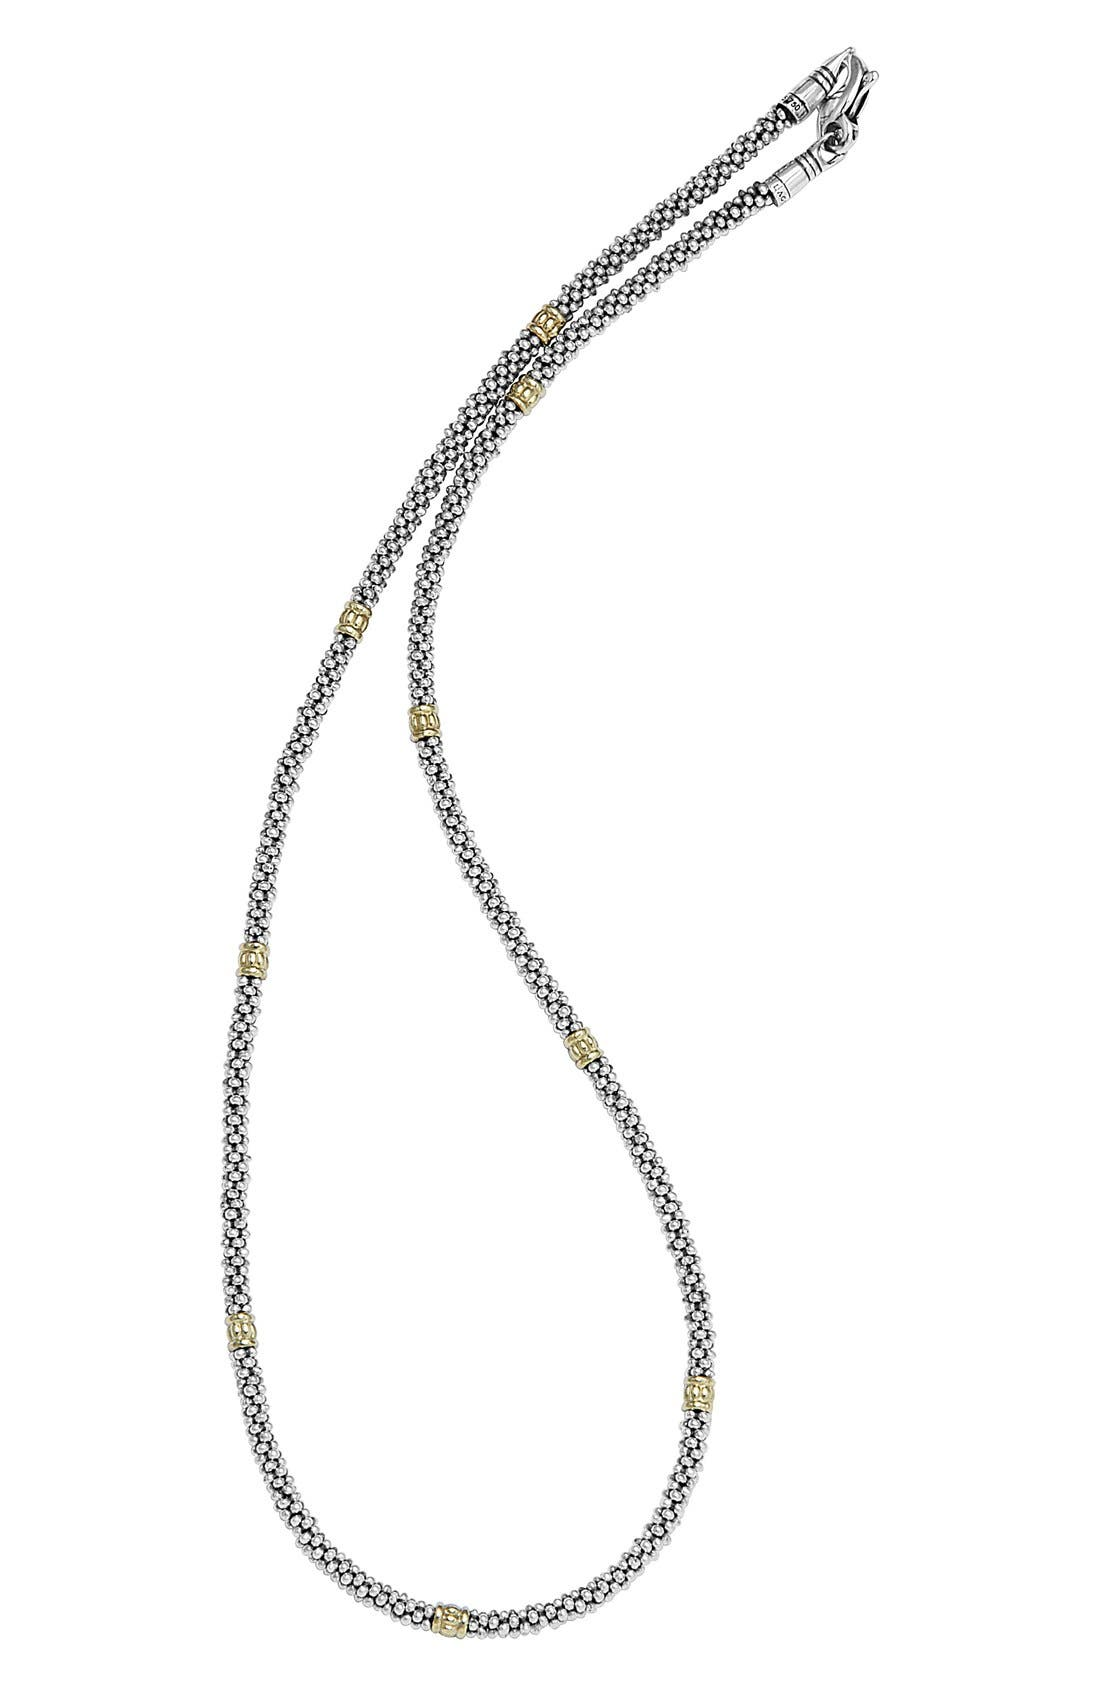 Caviar Rope Necklace,                             Alternate thumbnail 4, color,                             Silver/Gold